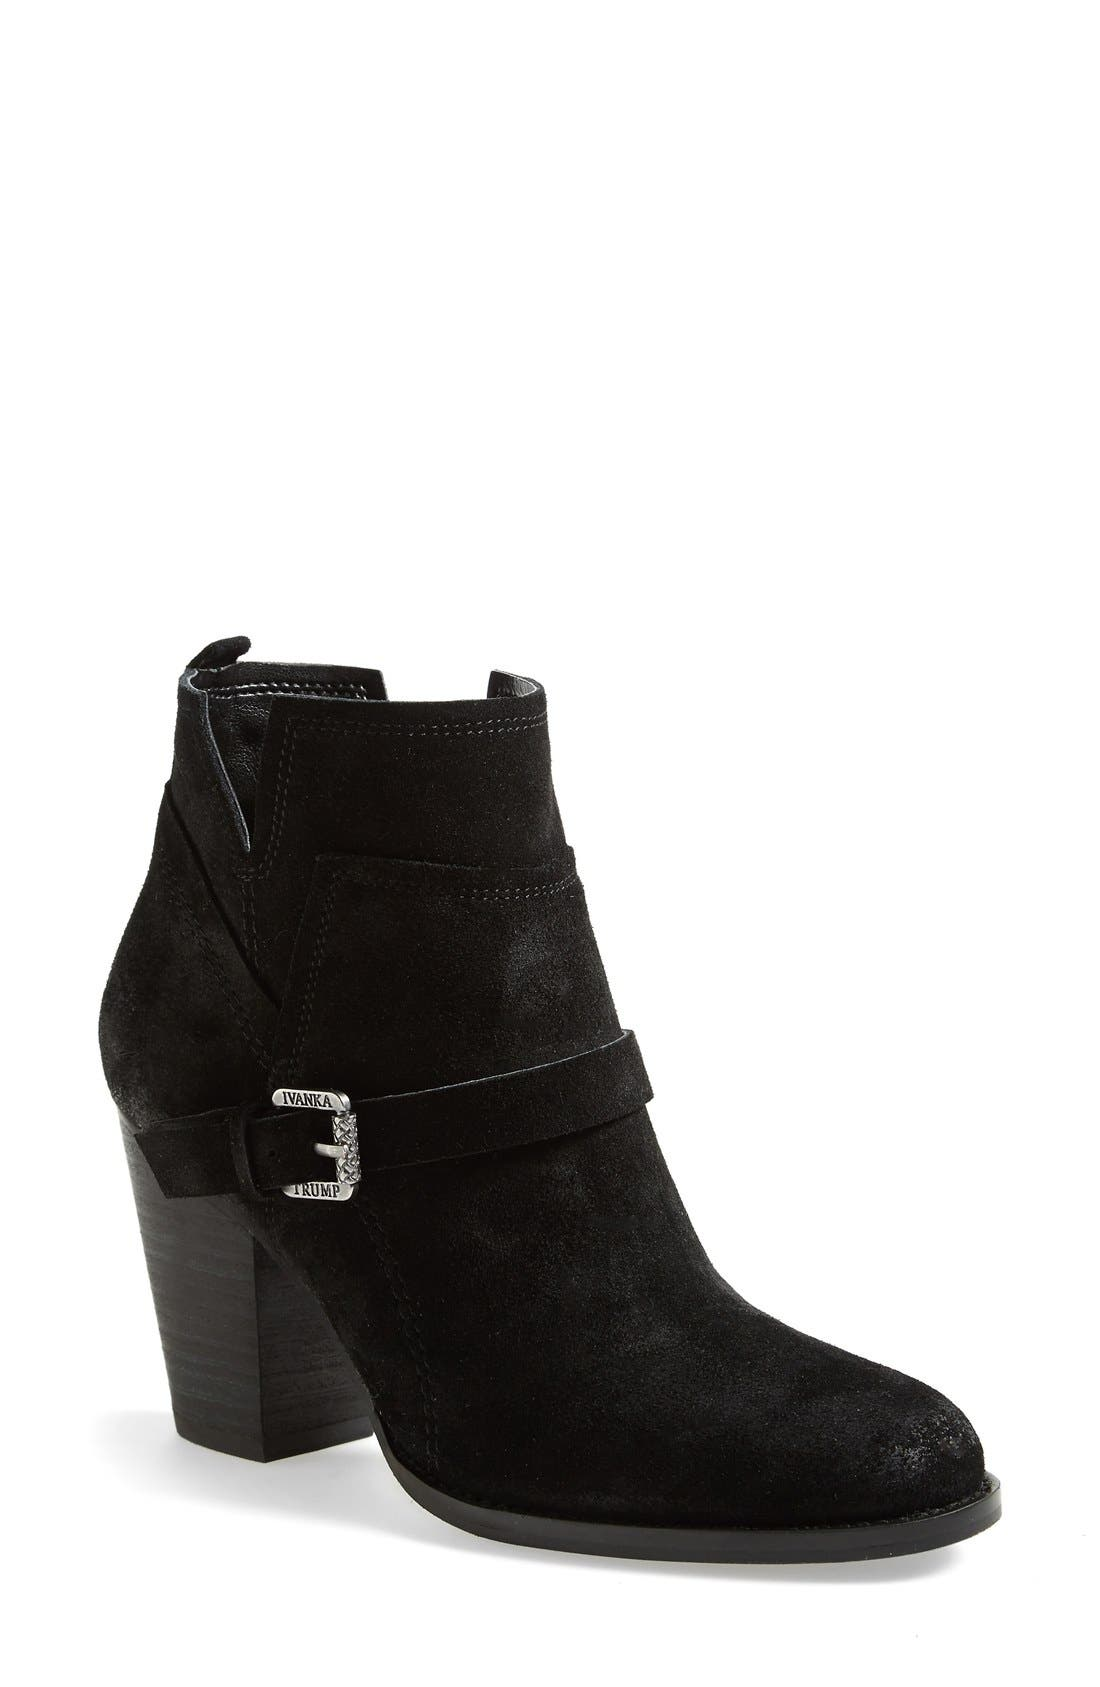 IVANKA TRUMP 'Frankly' Belted Round Toe Bootie, Main, color, 001